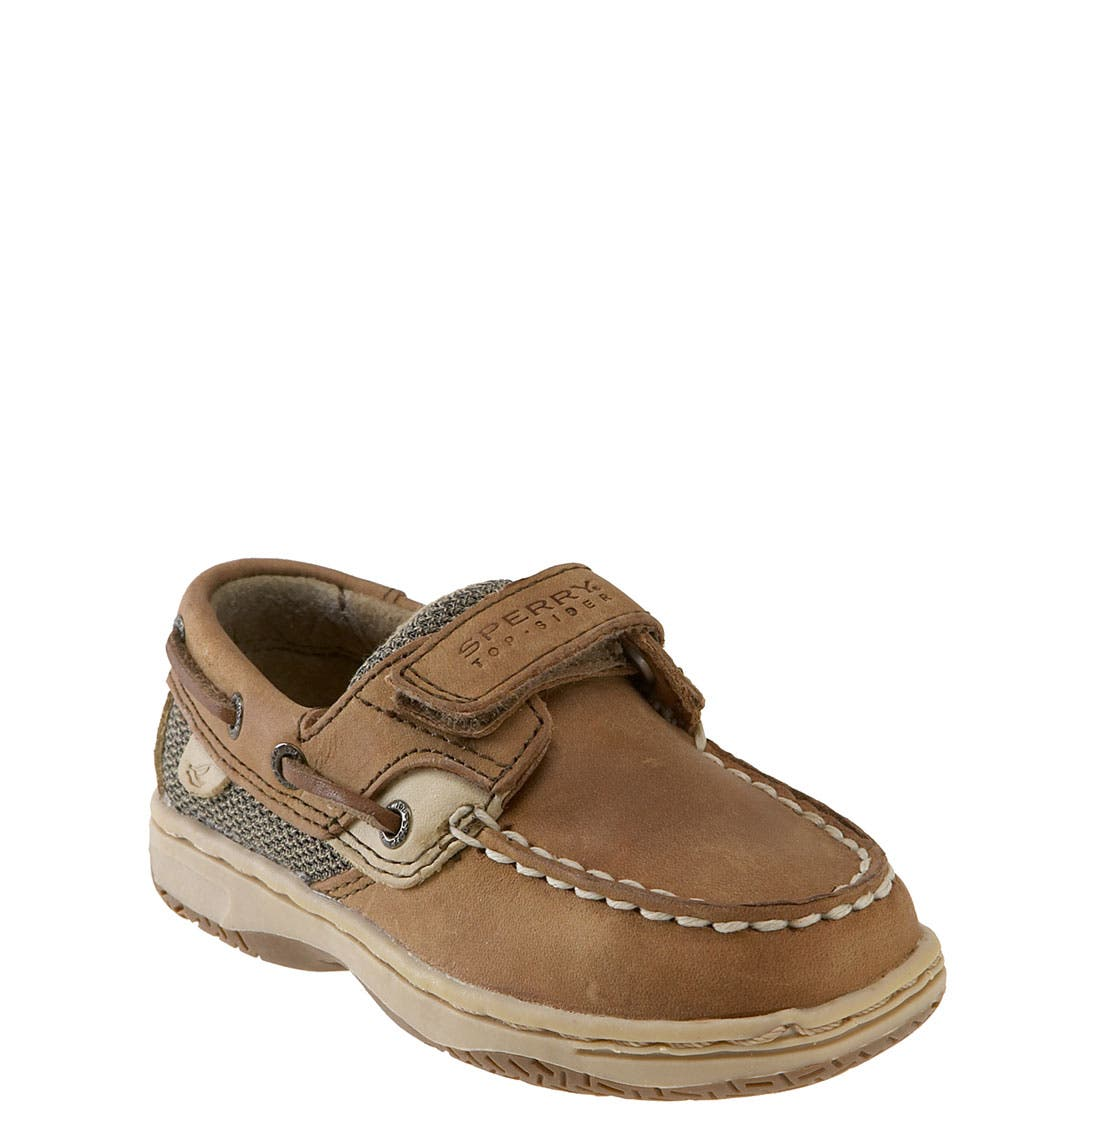 Alternate Image 1 Selected - Sperry Kids 'Bluefish' Oxford (Walker & Toddler)